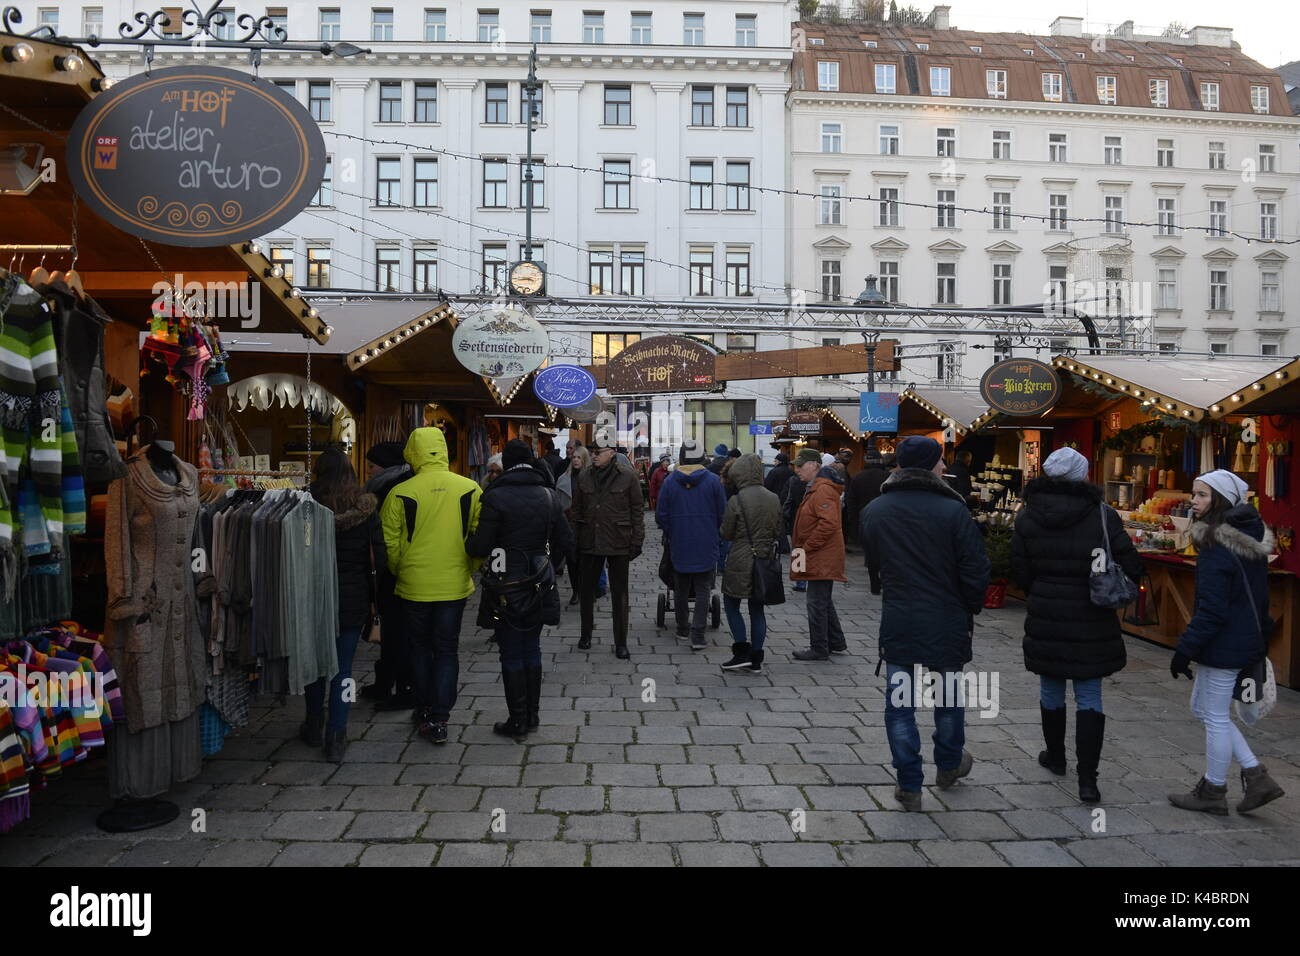 Christmas Market At The Hof In Vienna - Stock Image